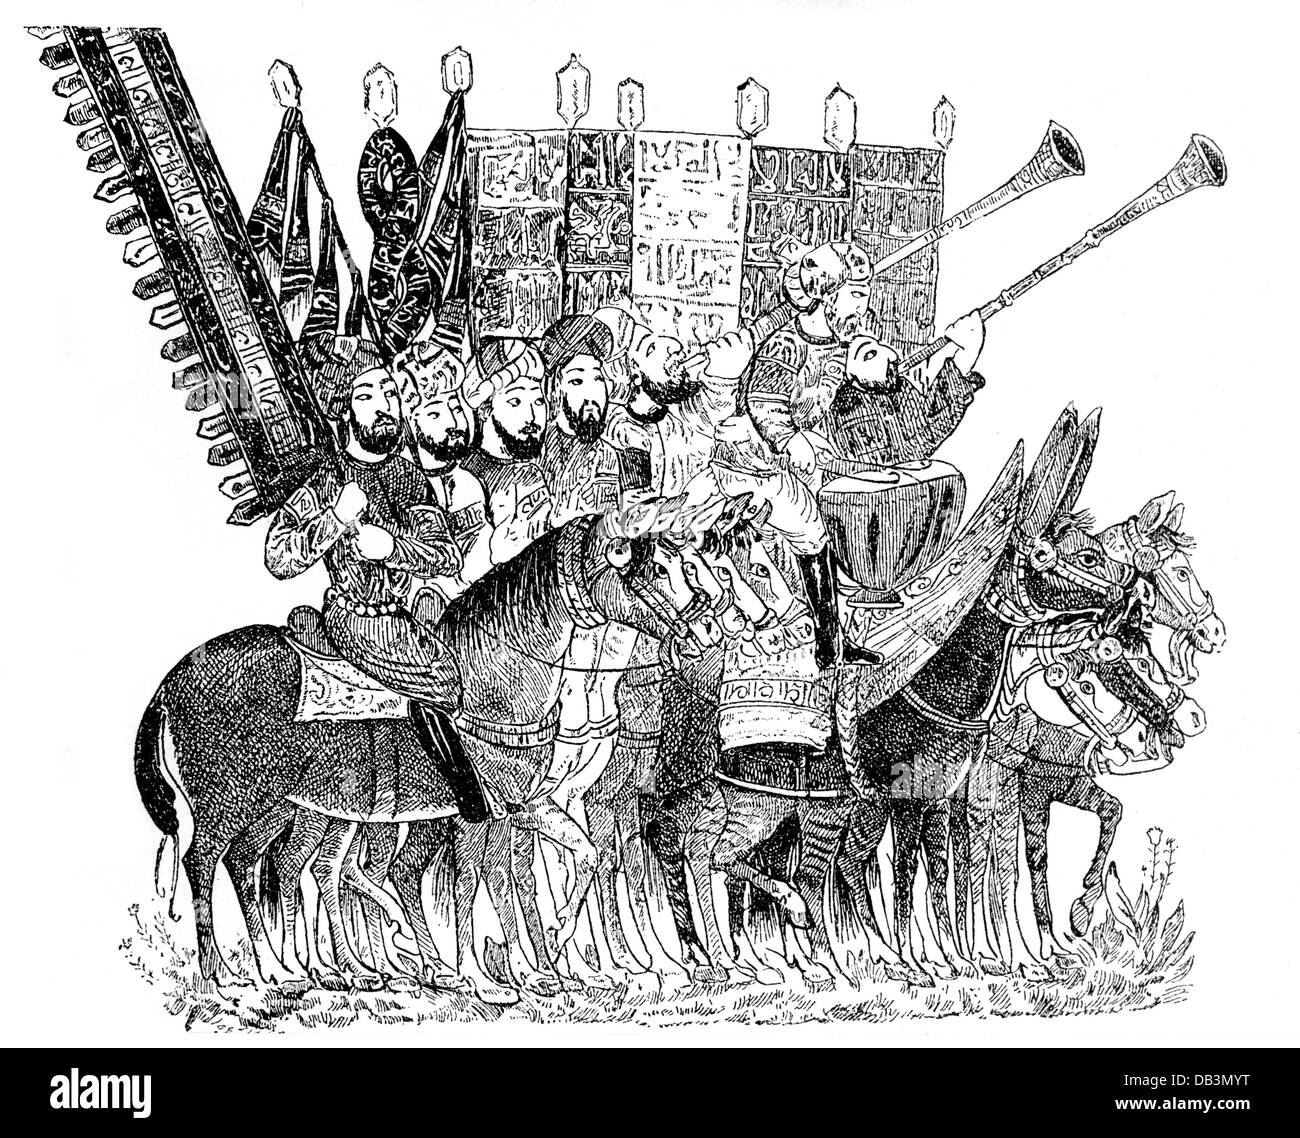 military, Middle Ages, Arab standard-bearer and musicians, wood engraving, before 1896, Additional-Rights-Clearences - Stock Image